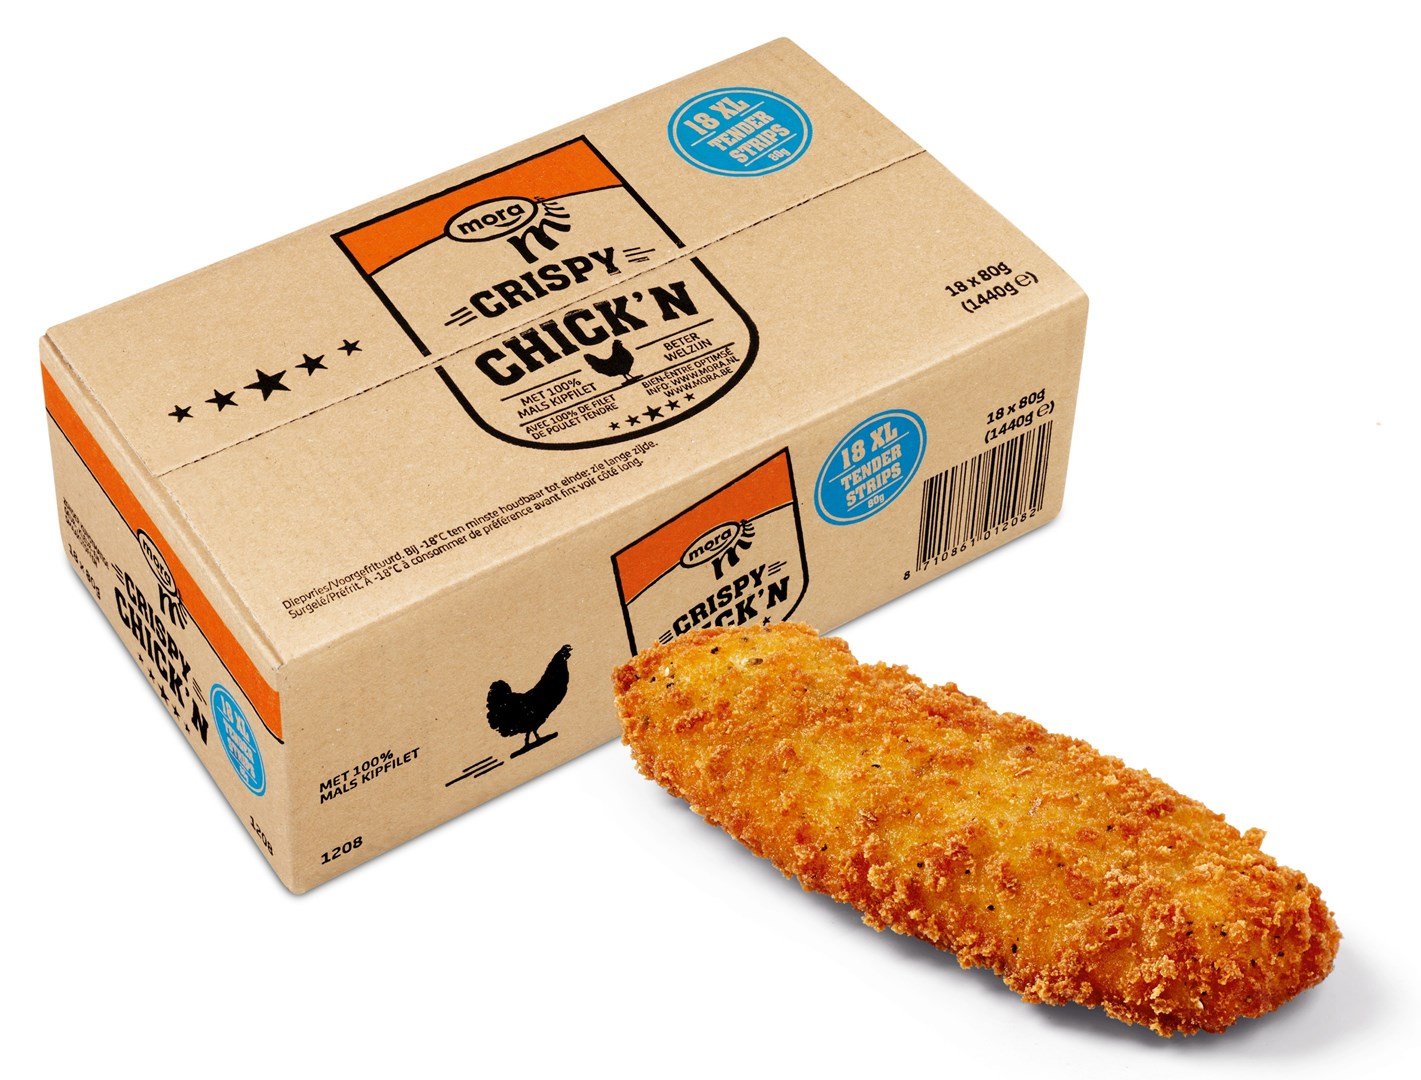 Productafbeelding 1208 Crispy Chick'n Tender Strips 1440g